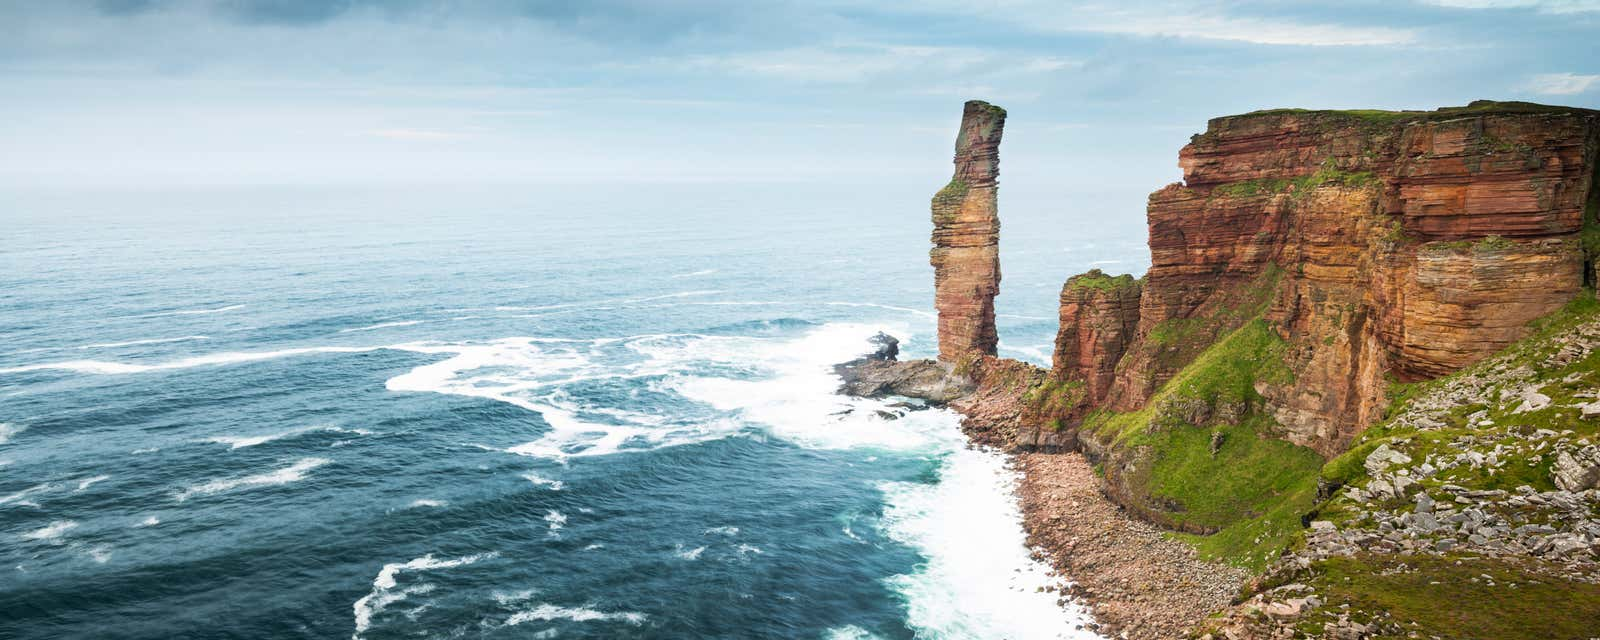 The Old Man of Hoy sea stack, Orkney, Scotland.